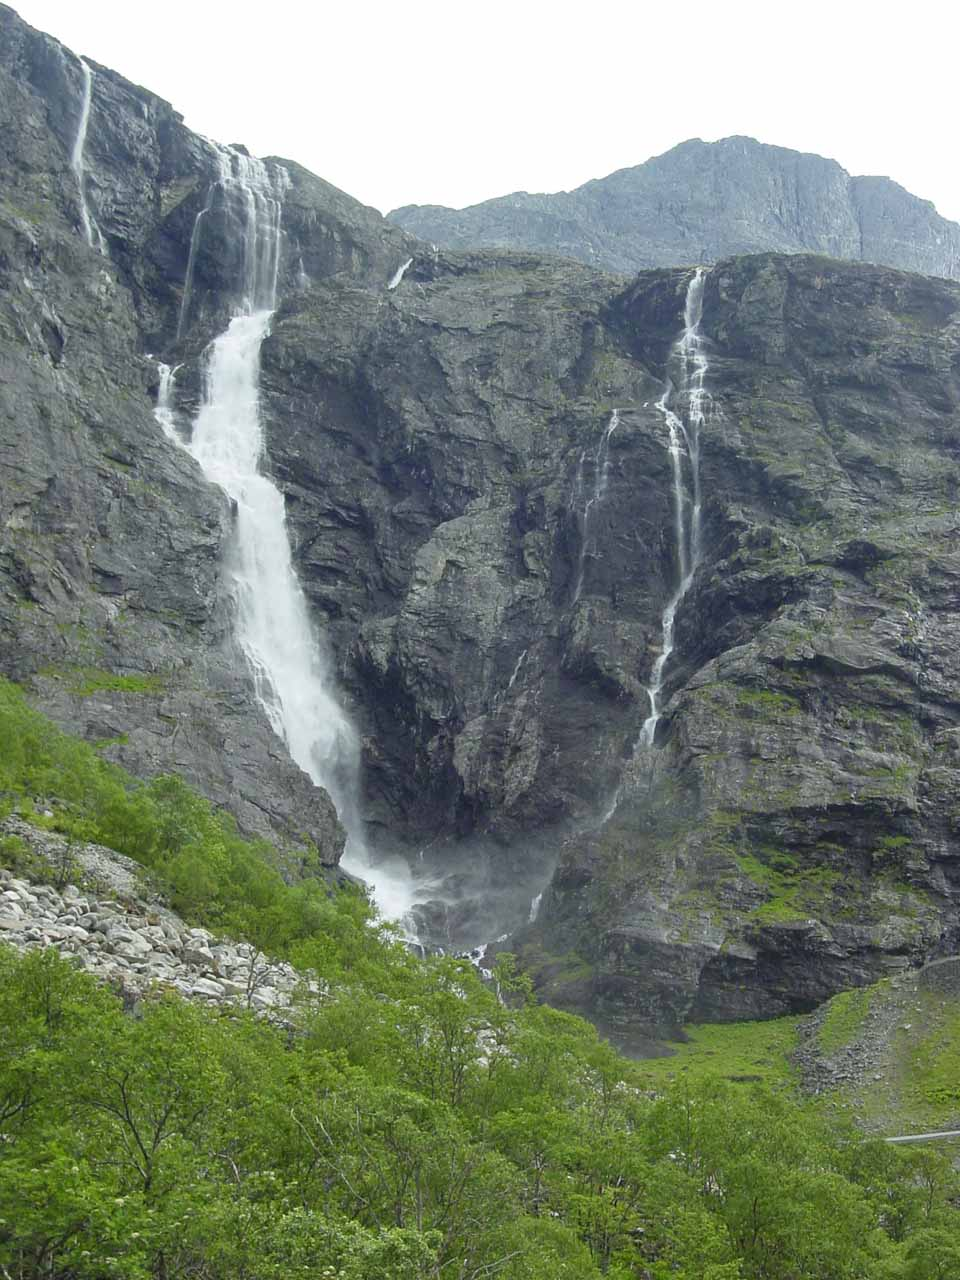 Looking towards Tverrdalsfossen to our left as we started to go up Trollstigen